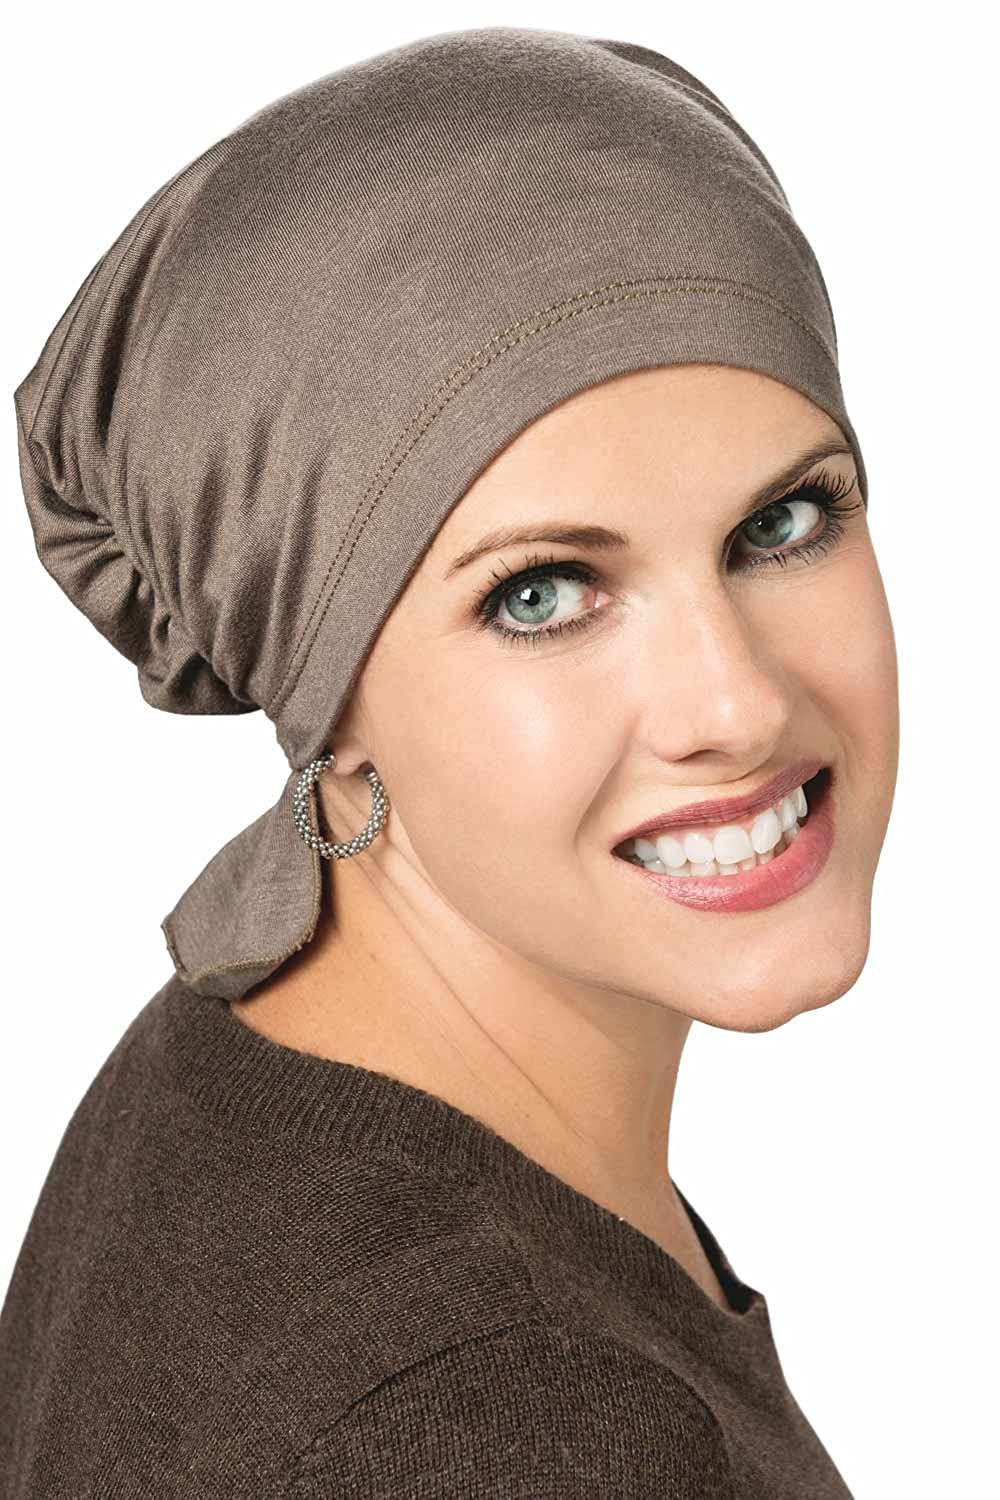 Gathered Scarf Beanie - Chemo Head Cover Cancer Hat for Chemotherapy Hair  Loss Patients Amethyst Chevron at Amazon Women s Clothing store  1e383e0c469